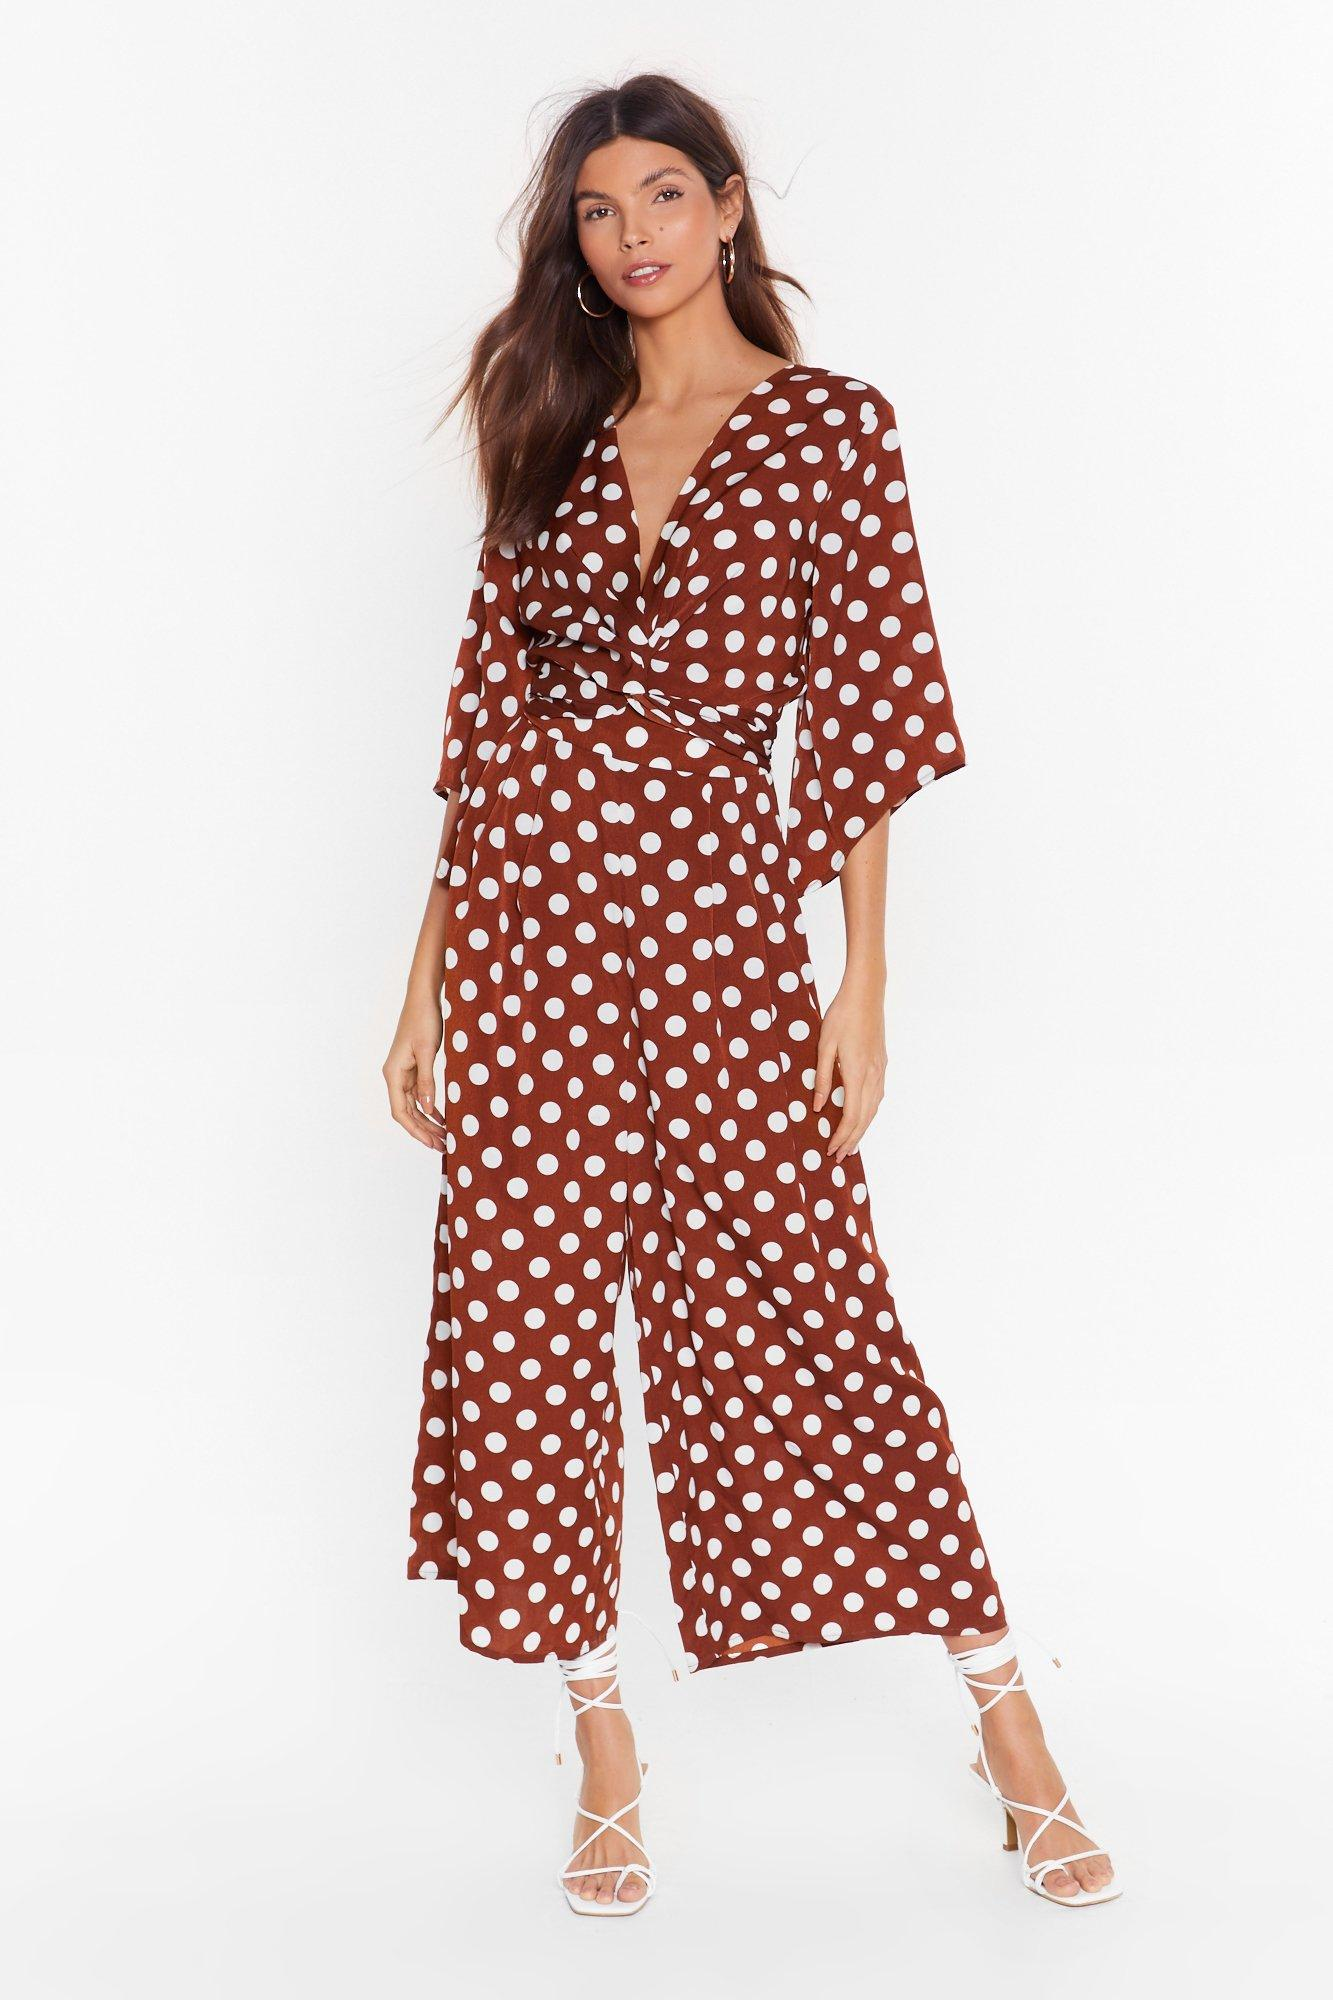 Image of Dot Today Babe Polka Dot Culotte Jumpsuit